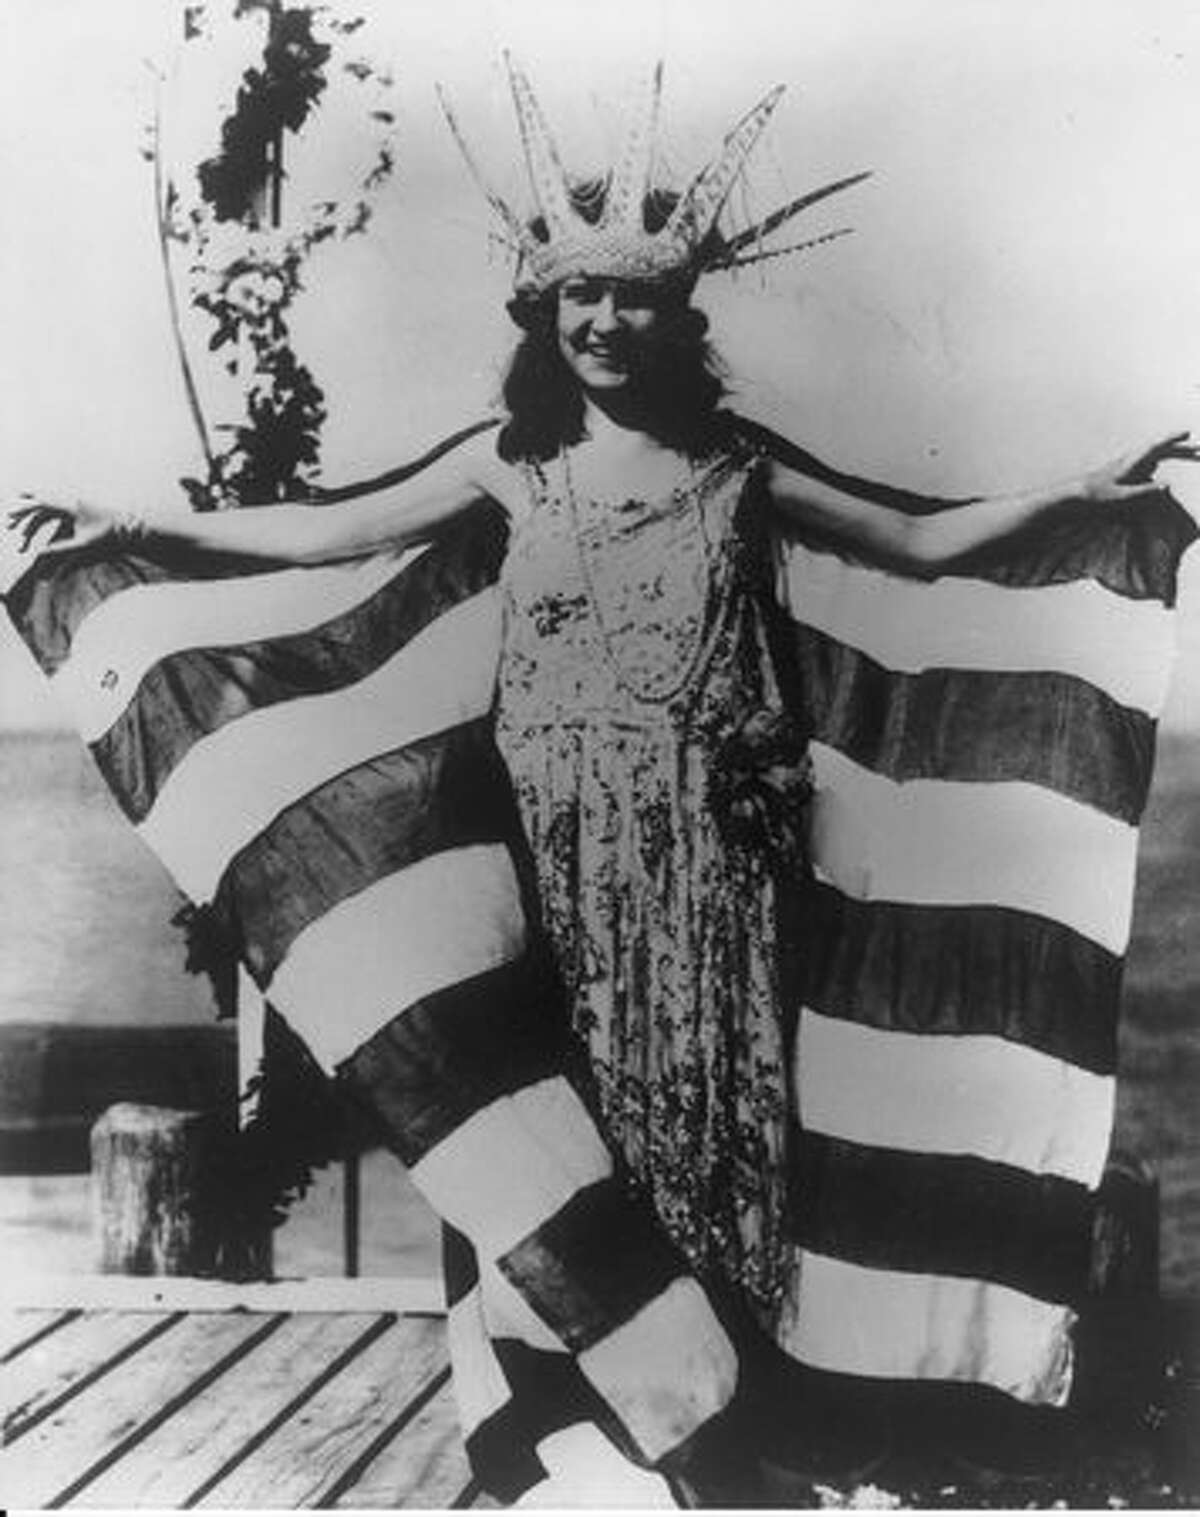 With Miss America 2011 set to be crowned Saturday night in Las Vegas, this is a good time to look back at the 84 women who have worn the tiara. 1921: Margaret Gorman, District of Columbia. Gorman was just a junior in high school when she entered the